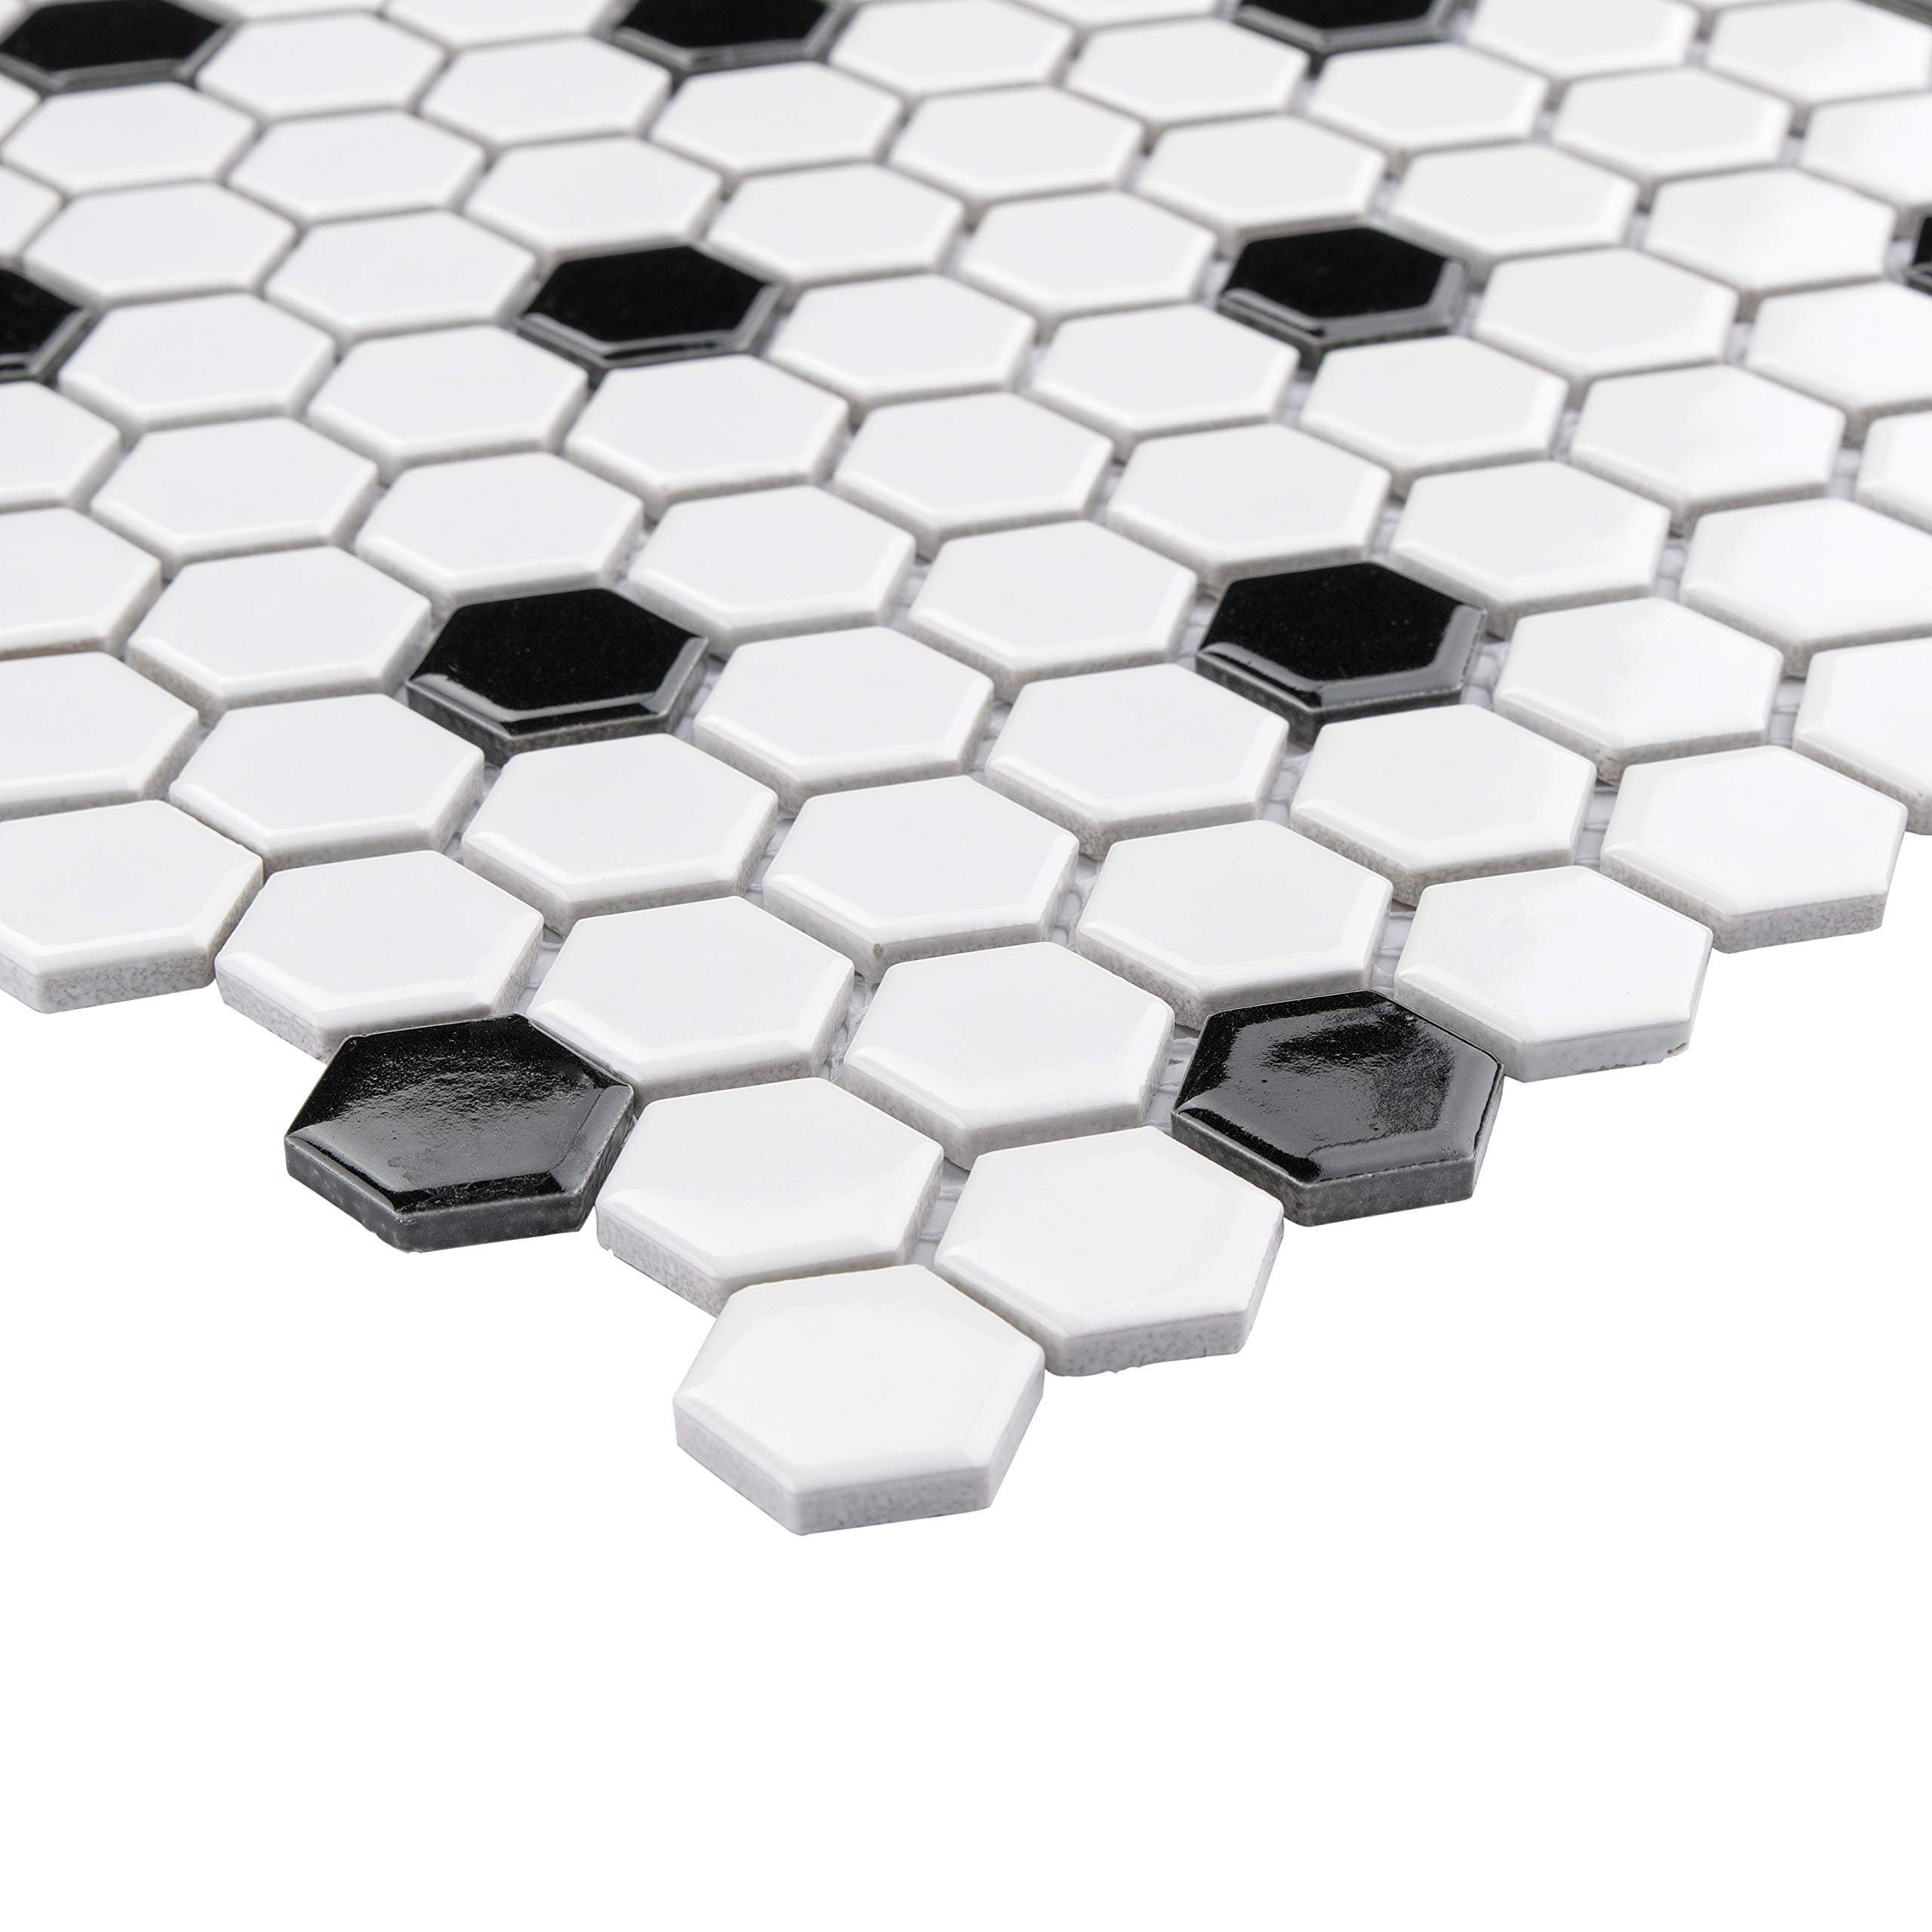 SomerTile FXLMHWBD Retro Hexagon Porcelain Mosaic Floor and Wall Tile, 10.25'' x 11.75'', White with Black Dot by SOMERTILE (Image #4)